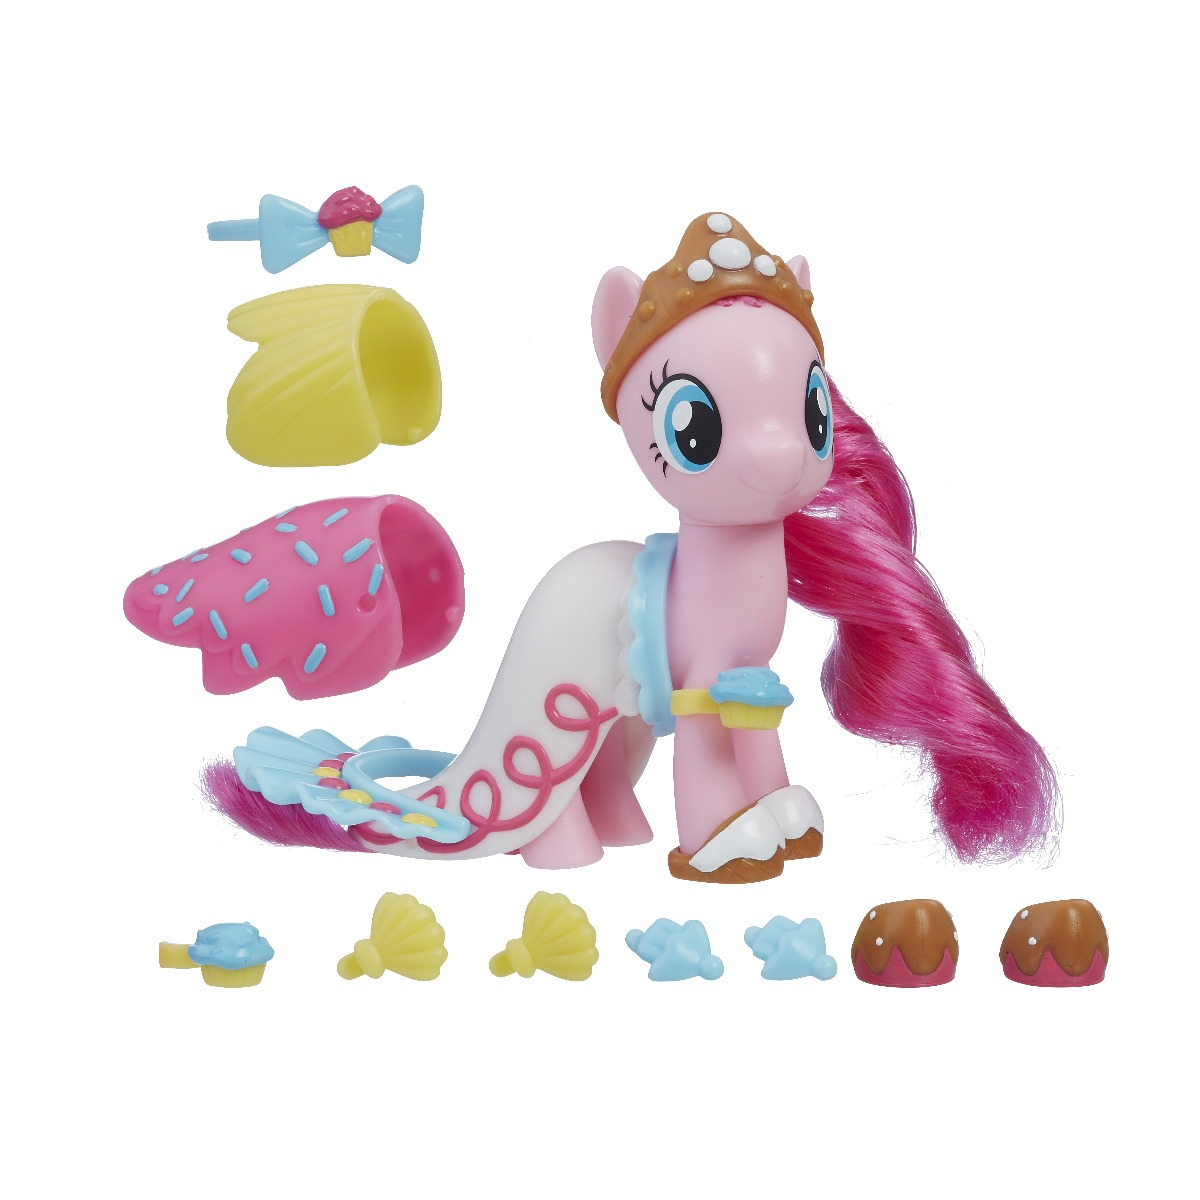 Figurina cu accesorii fashions My Little Pony The Movie - Pinkie Pie